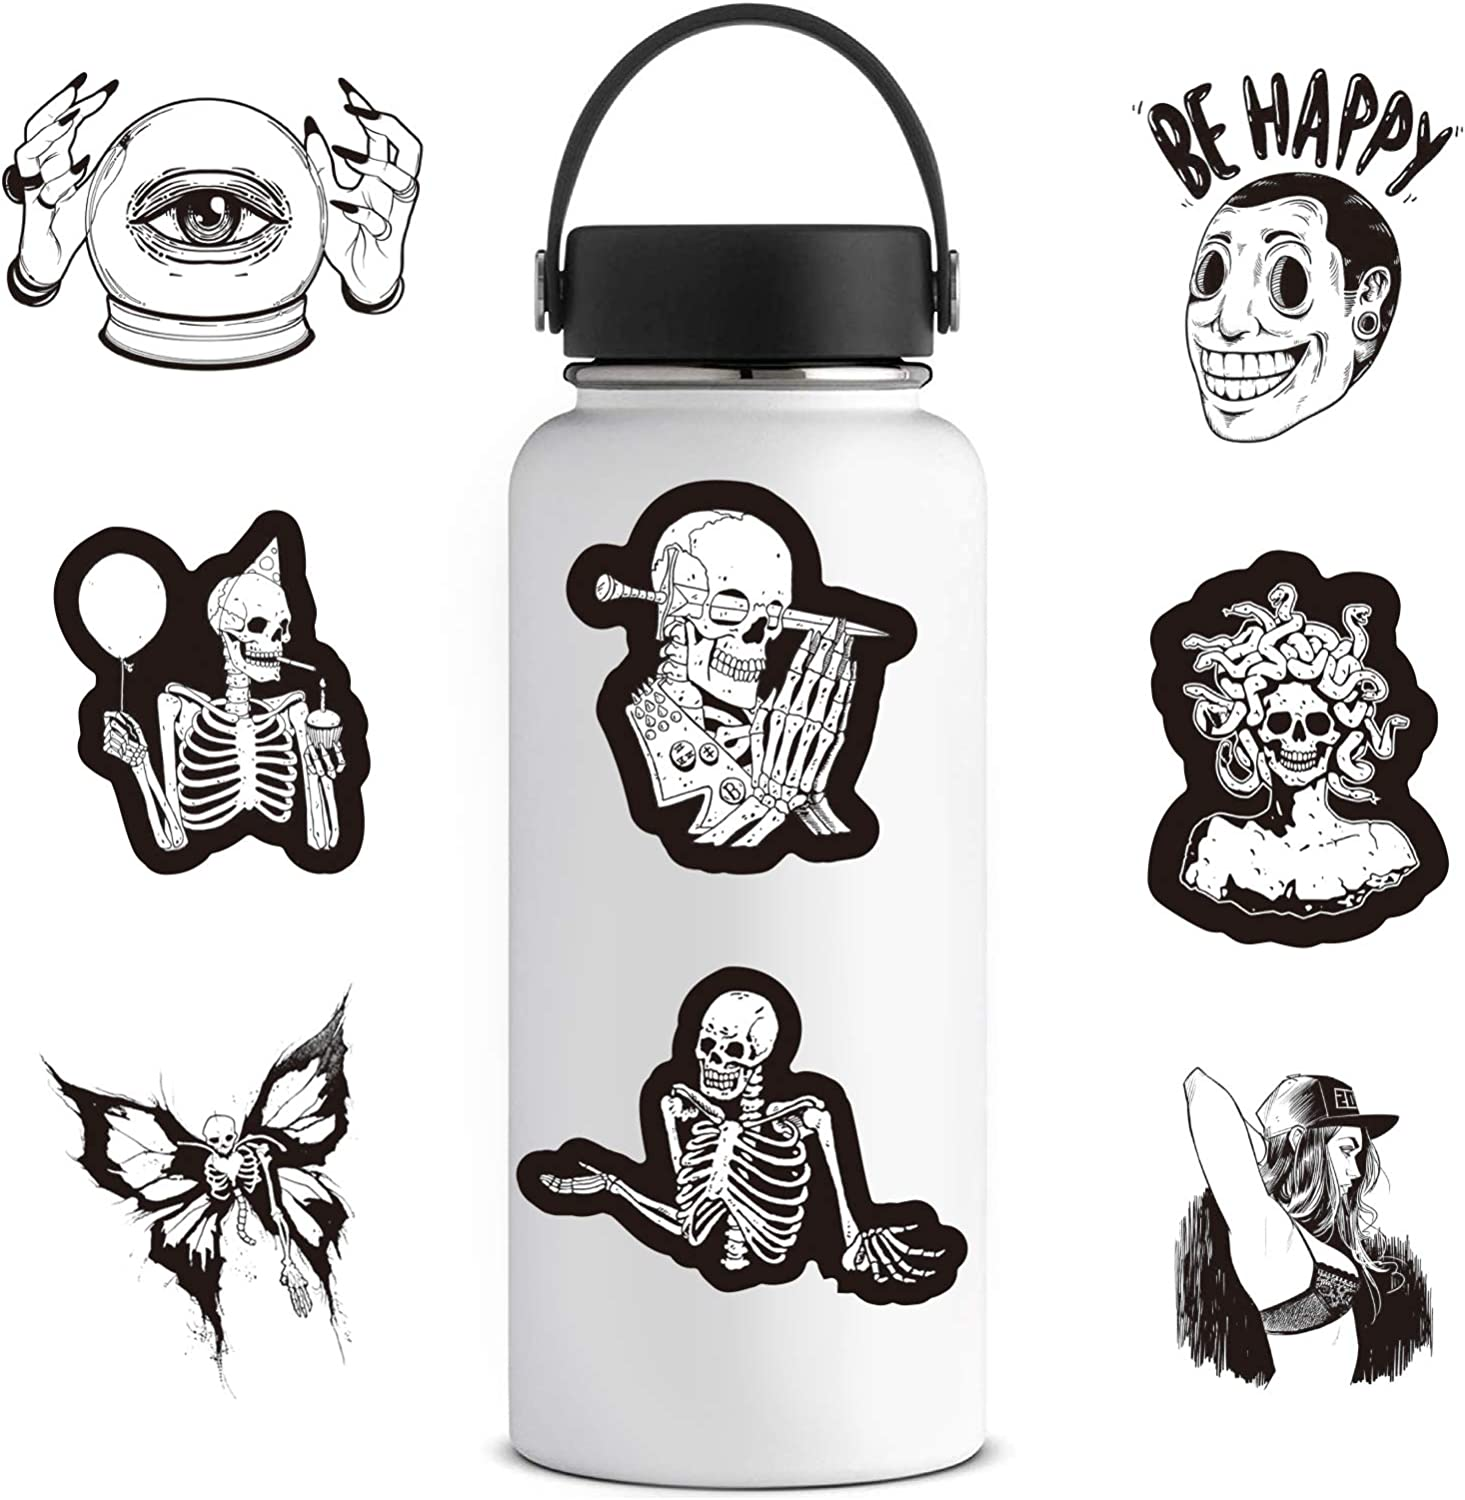 ZZHH Black White Gothic Wind Sticker Horror and Thriller Graffiti Sticker for Laptop Bicycle Skateboard Car Decal Sticker 50Pcs